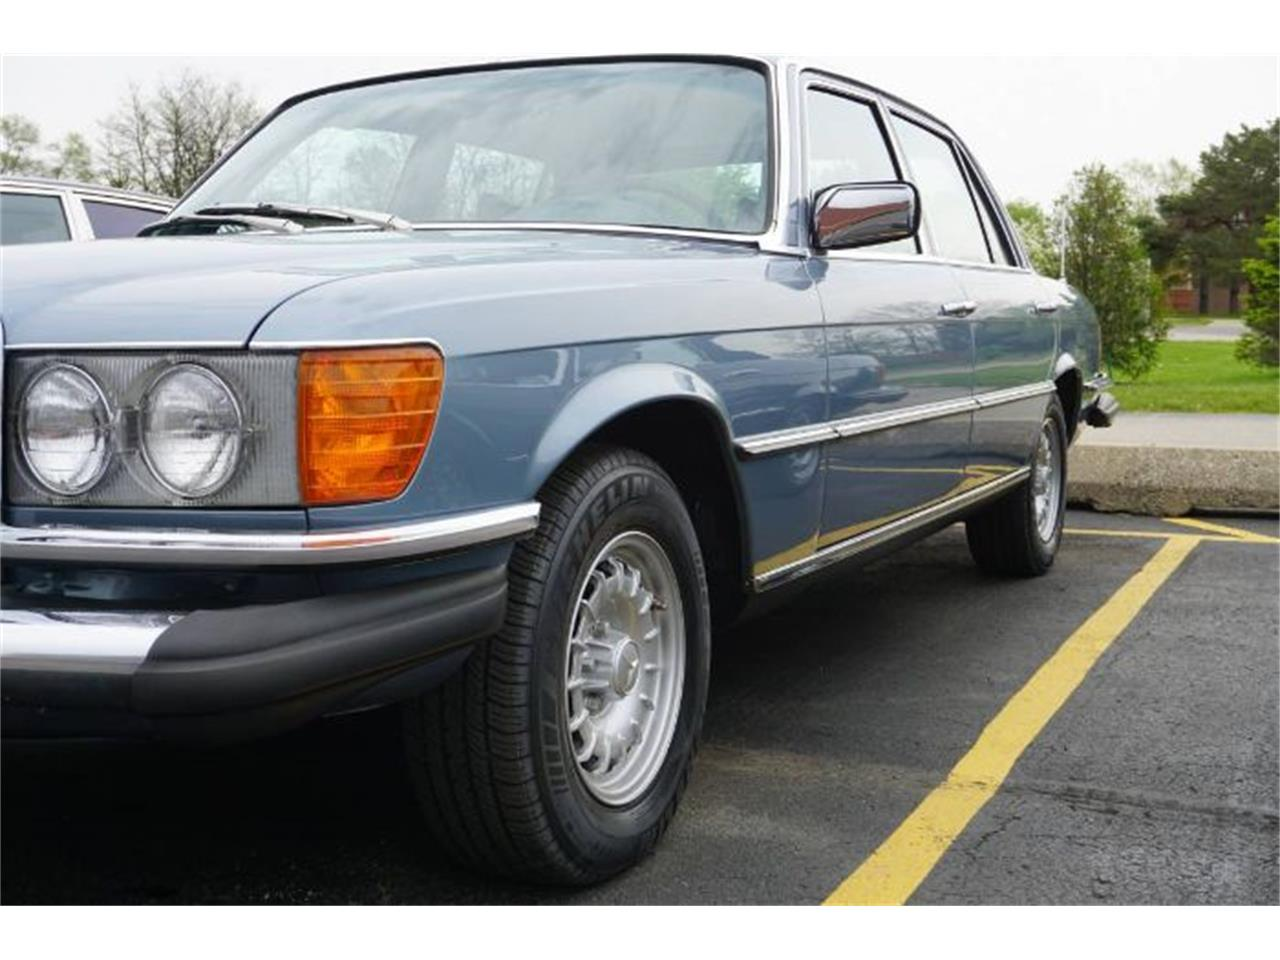 Large Picture of 1976 Mercedes-Benz 450SL located in Cadillac Michigan - $12,495.00 Offered by Classic Car Deals - R0C7